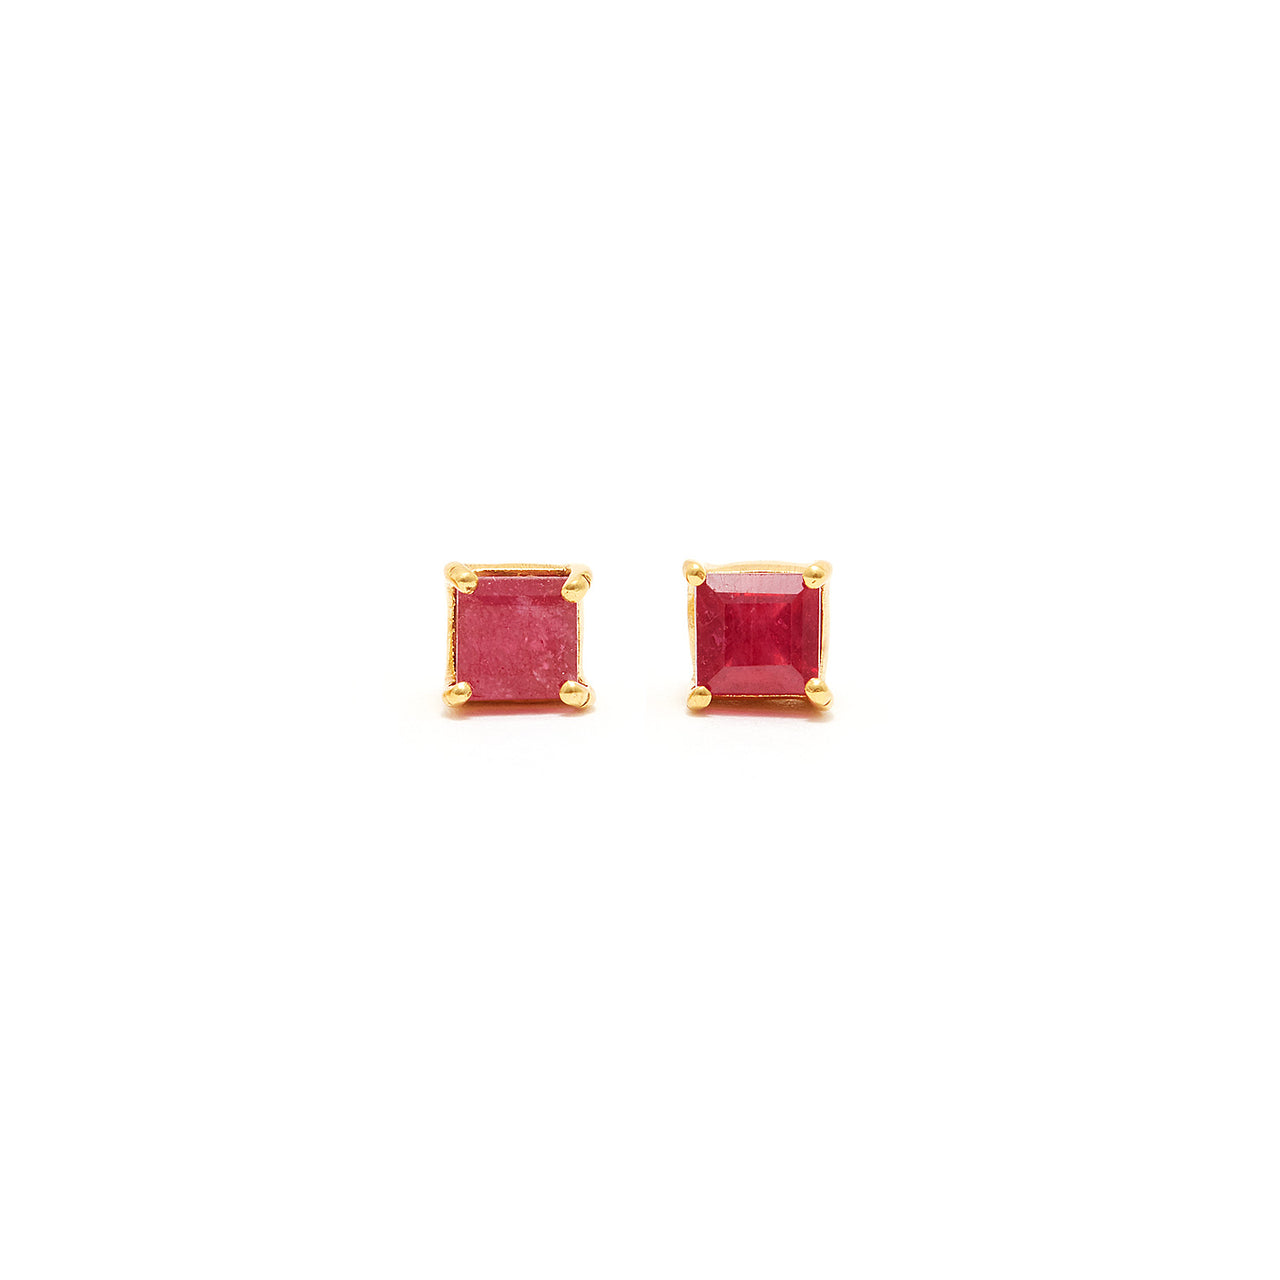 Ruby Cushion Cut Stud Earrings-Earrings-Jaipur Atelier